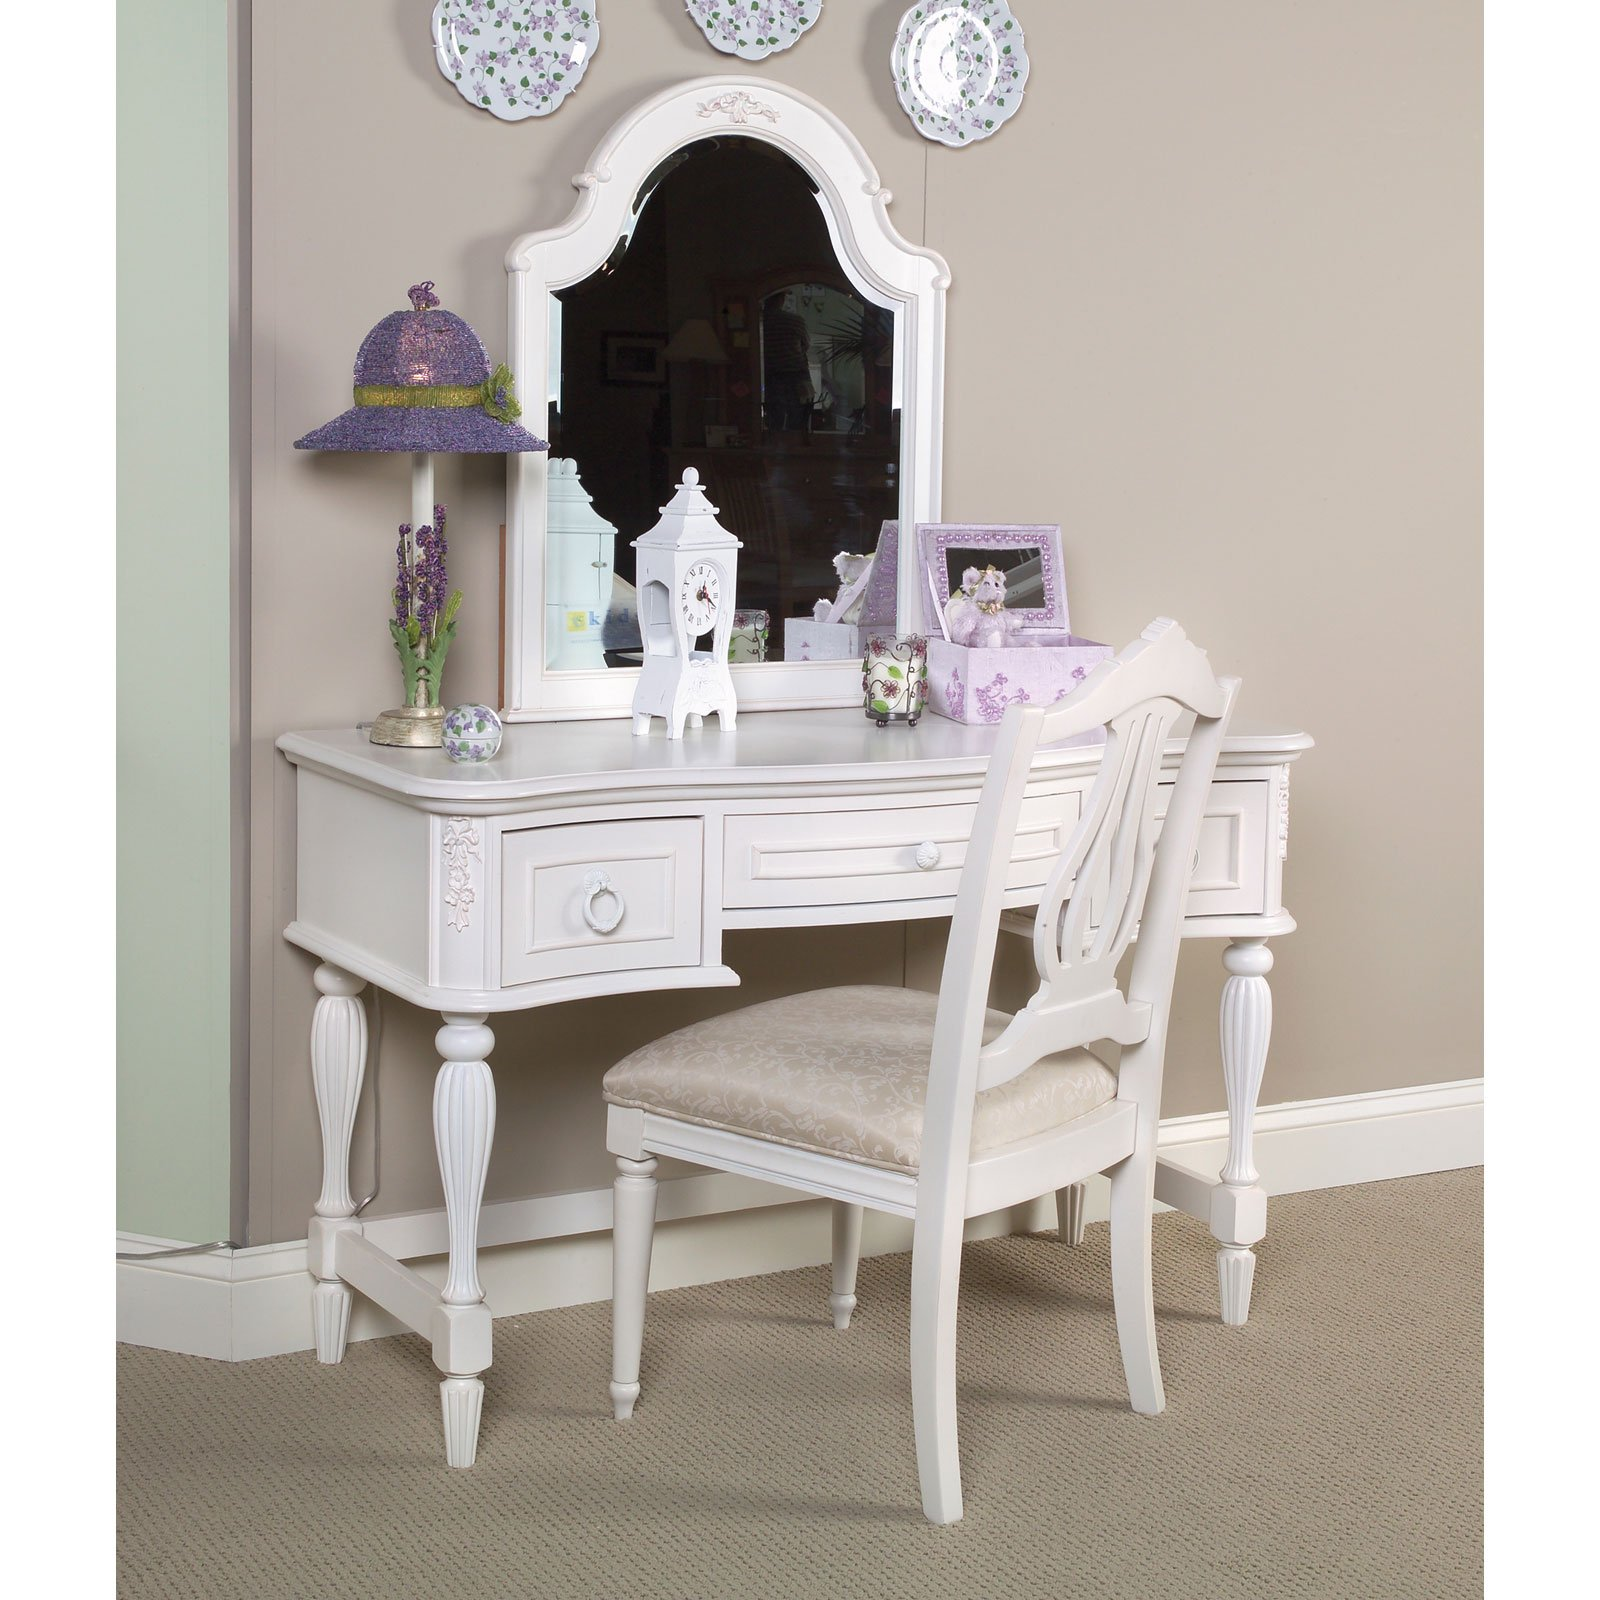 Http Dreamhome Design Blogspot Com 2011 10 Luxury Bedroom Vanity Html